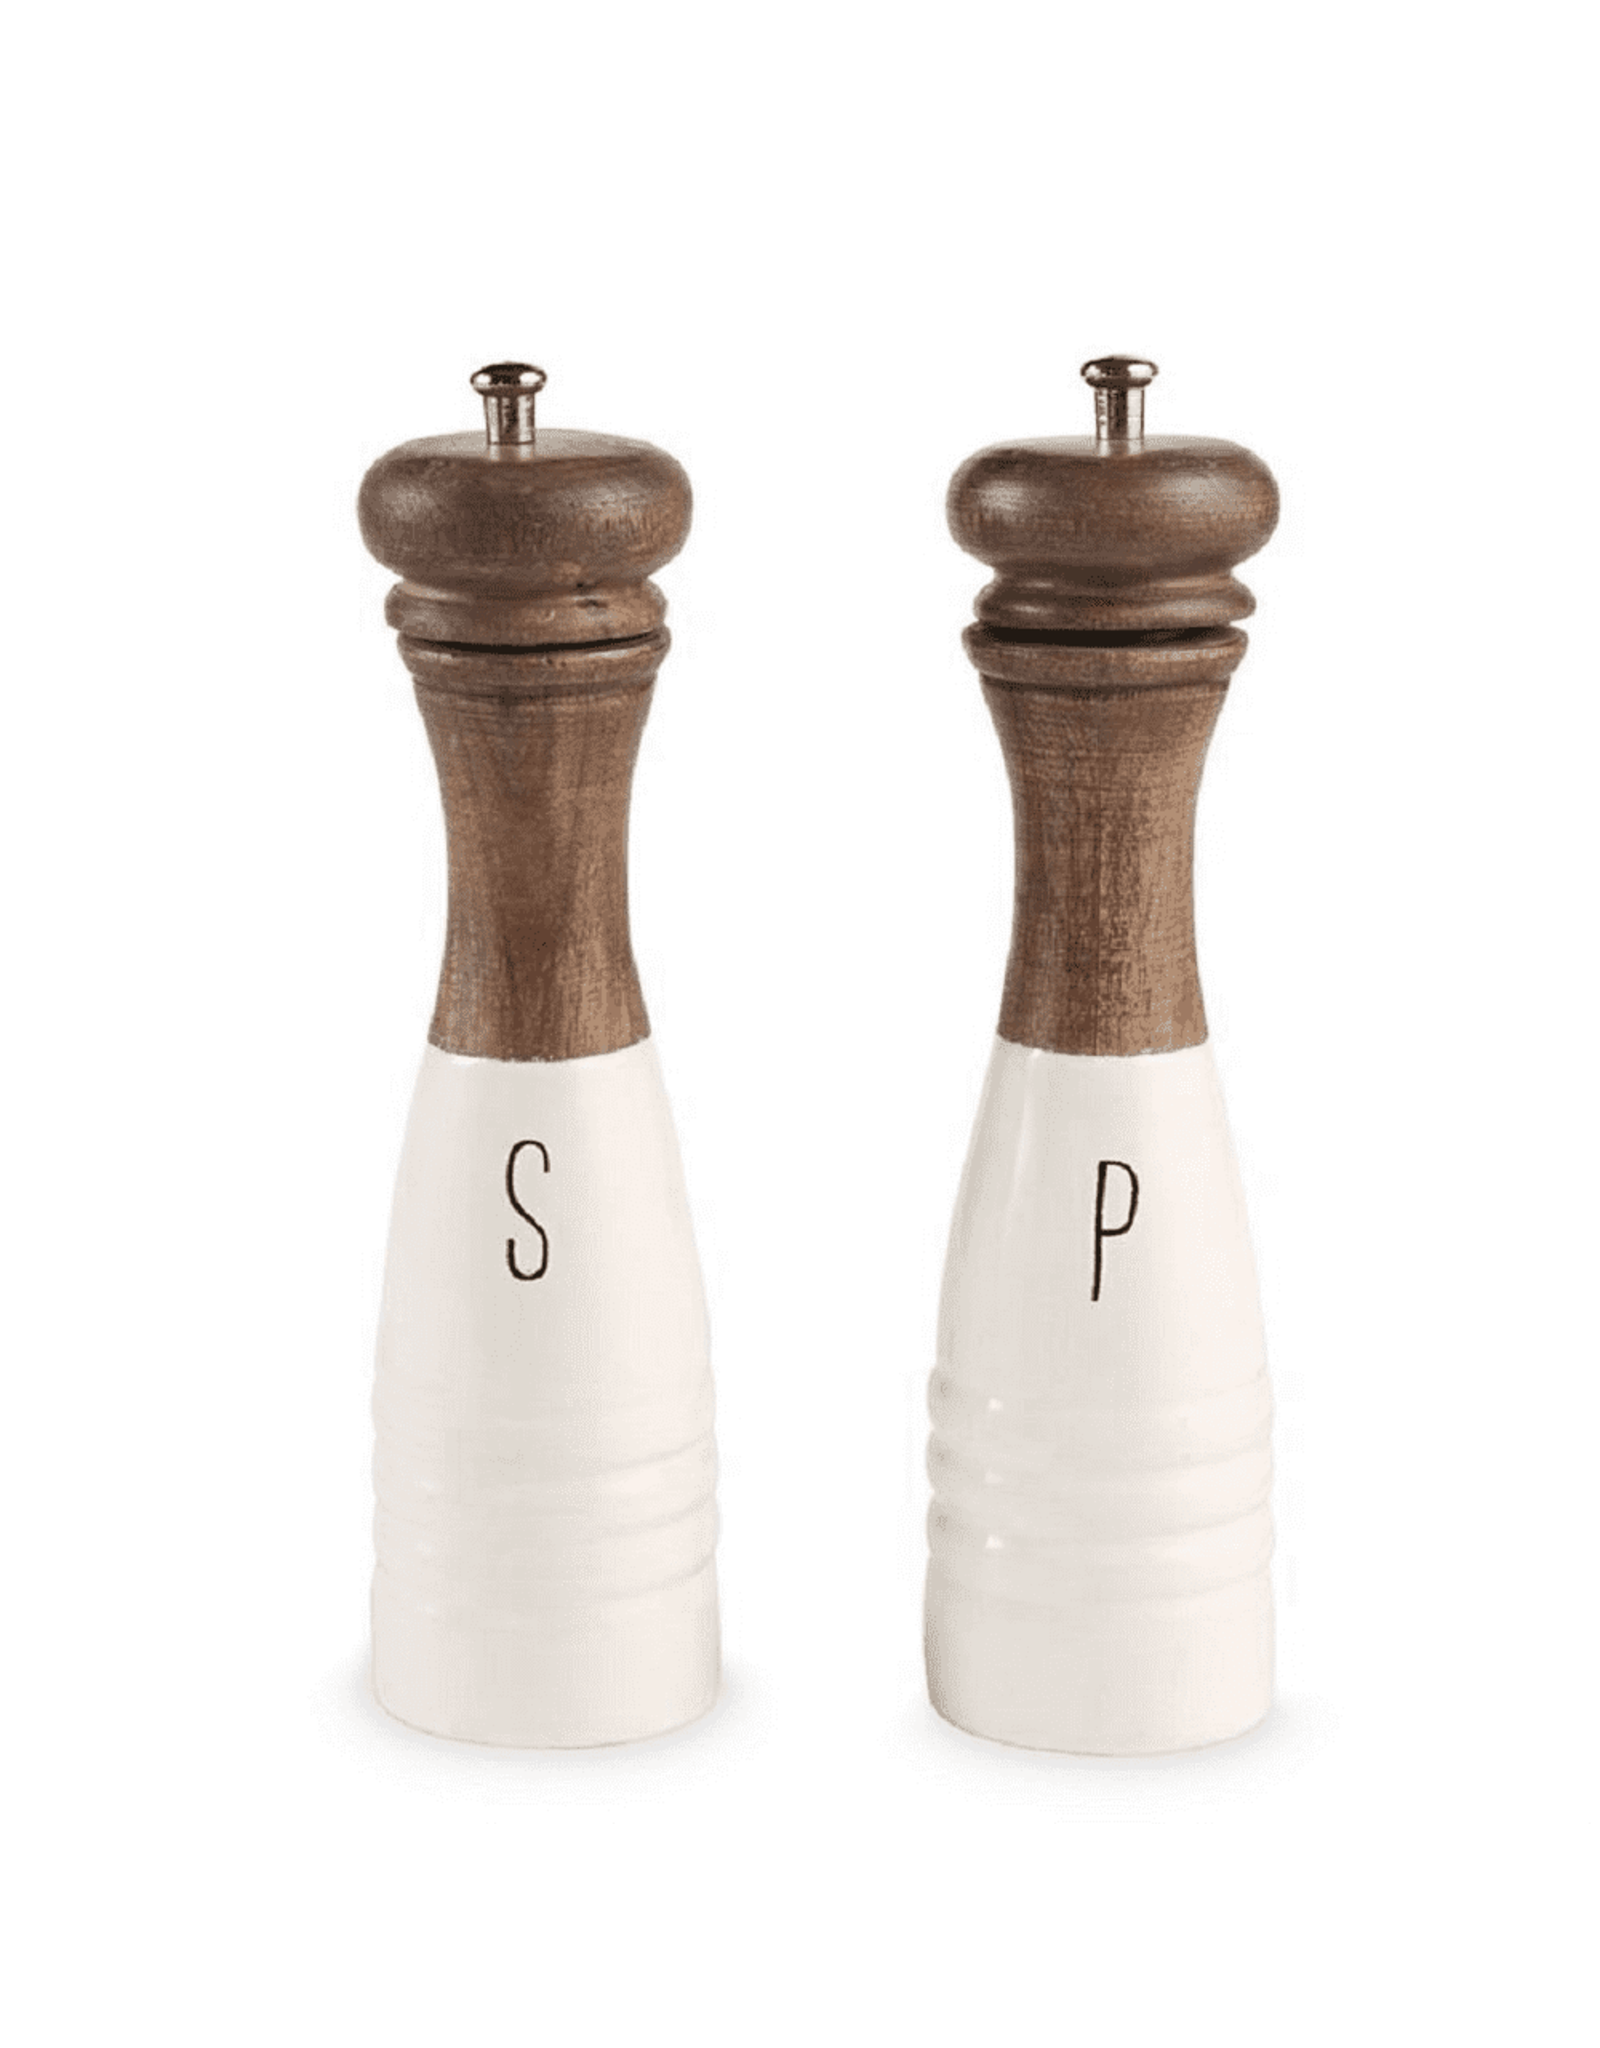 Oak + Arrow Interiors Wood/Enamel Salt & Pepper Mills (Set)